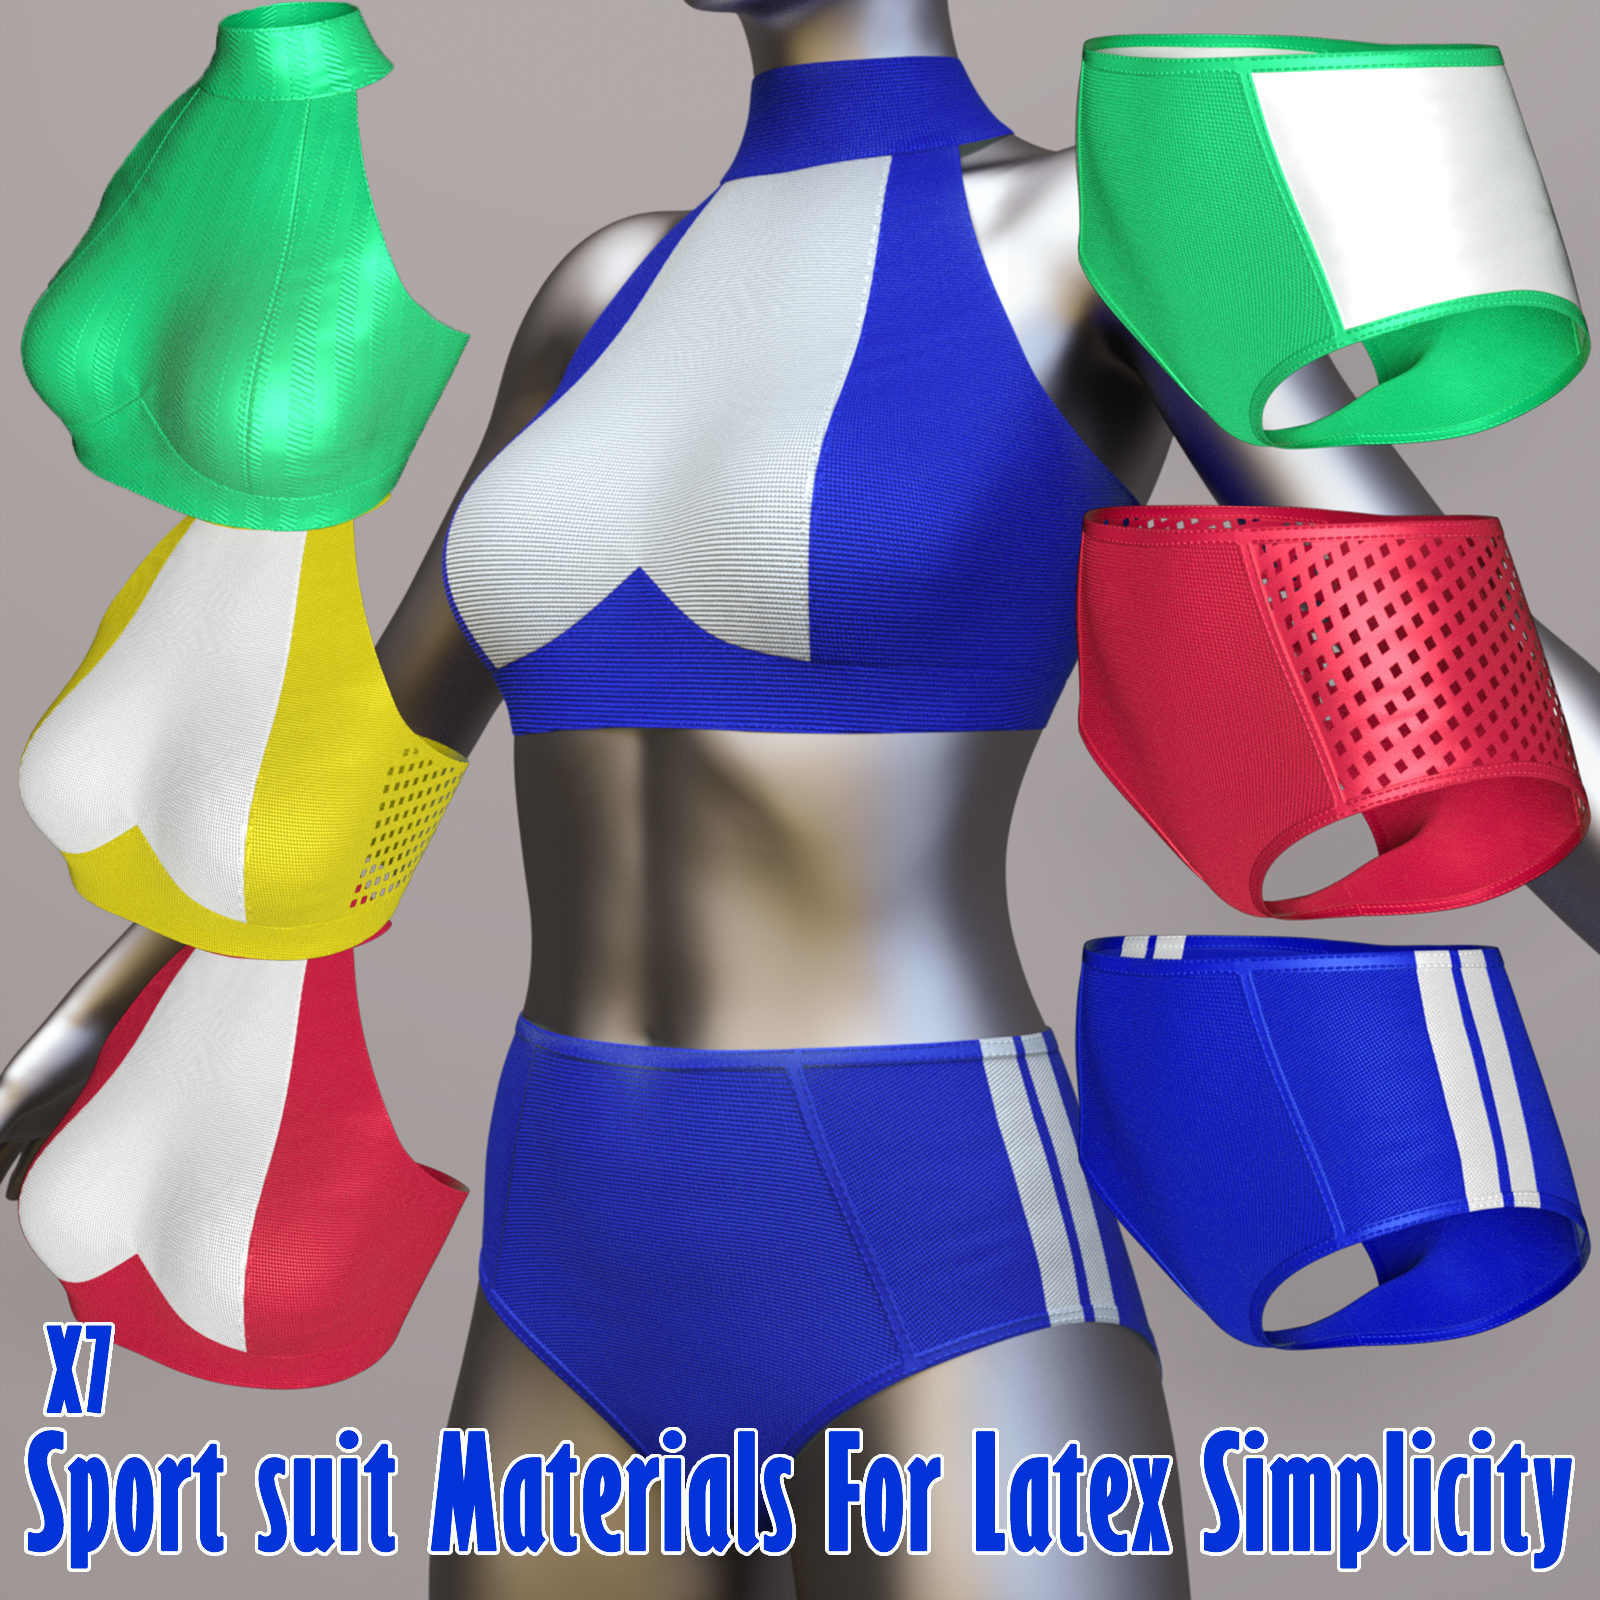 x7 Sport suit Materials For Latex Simplicity